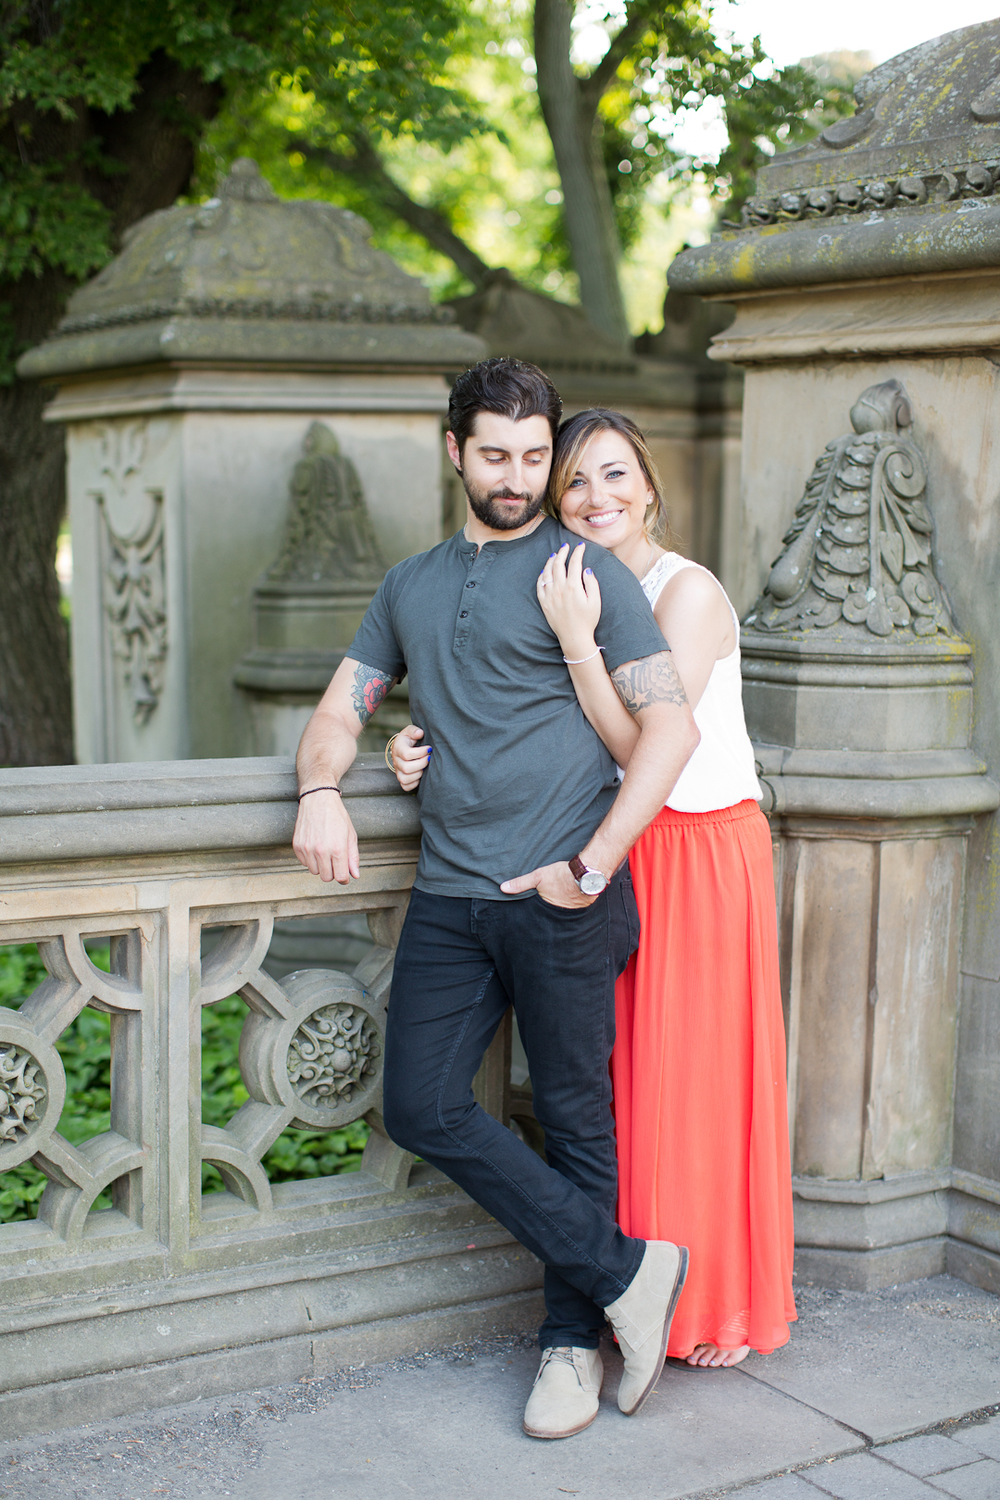 Melissa Kruse Photography - Eileen & Kenny Engagement Photos-72.jpg